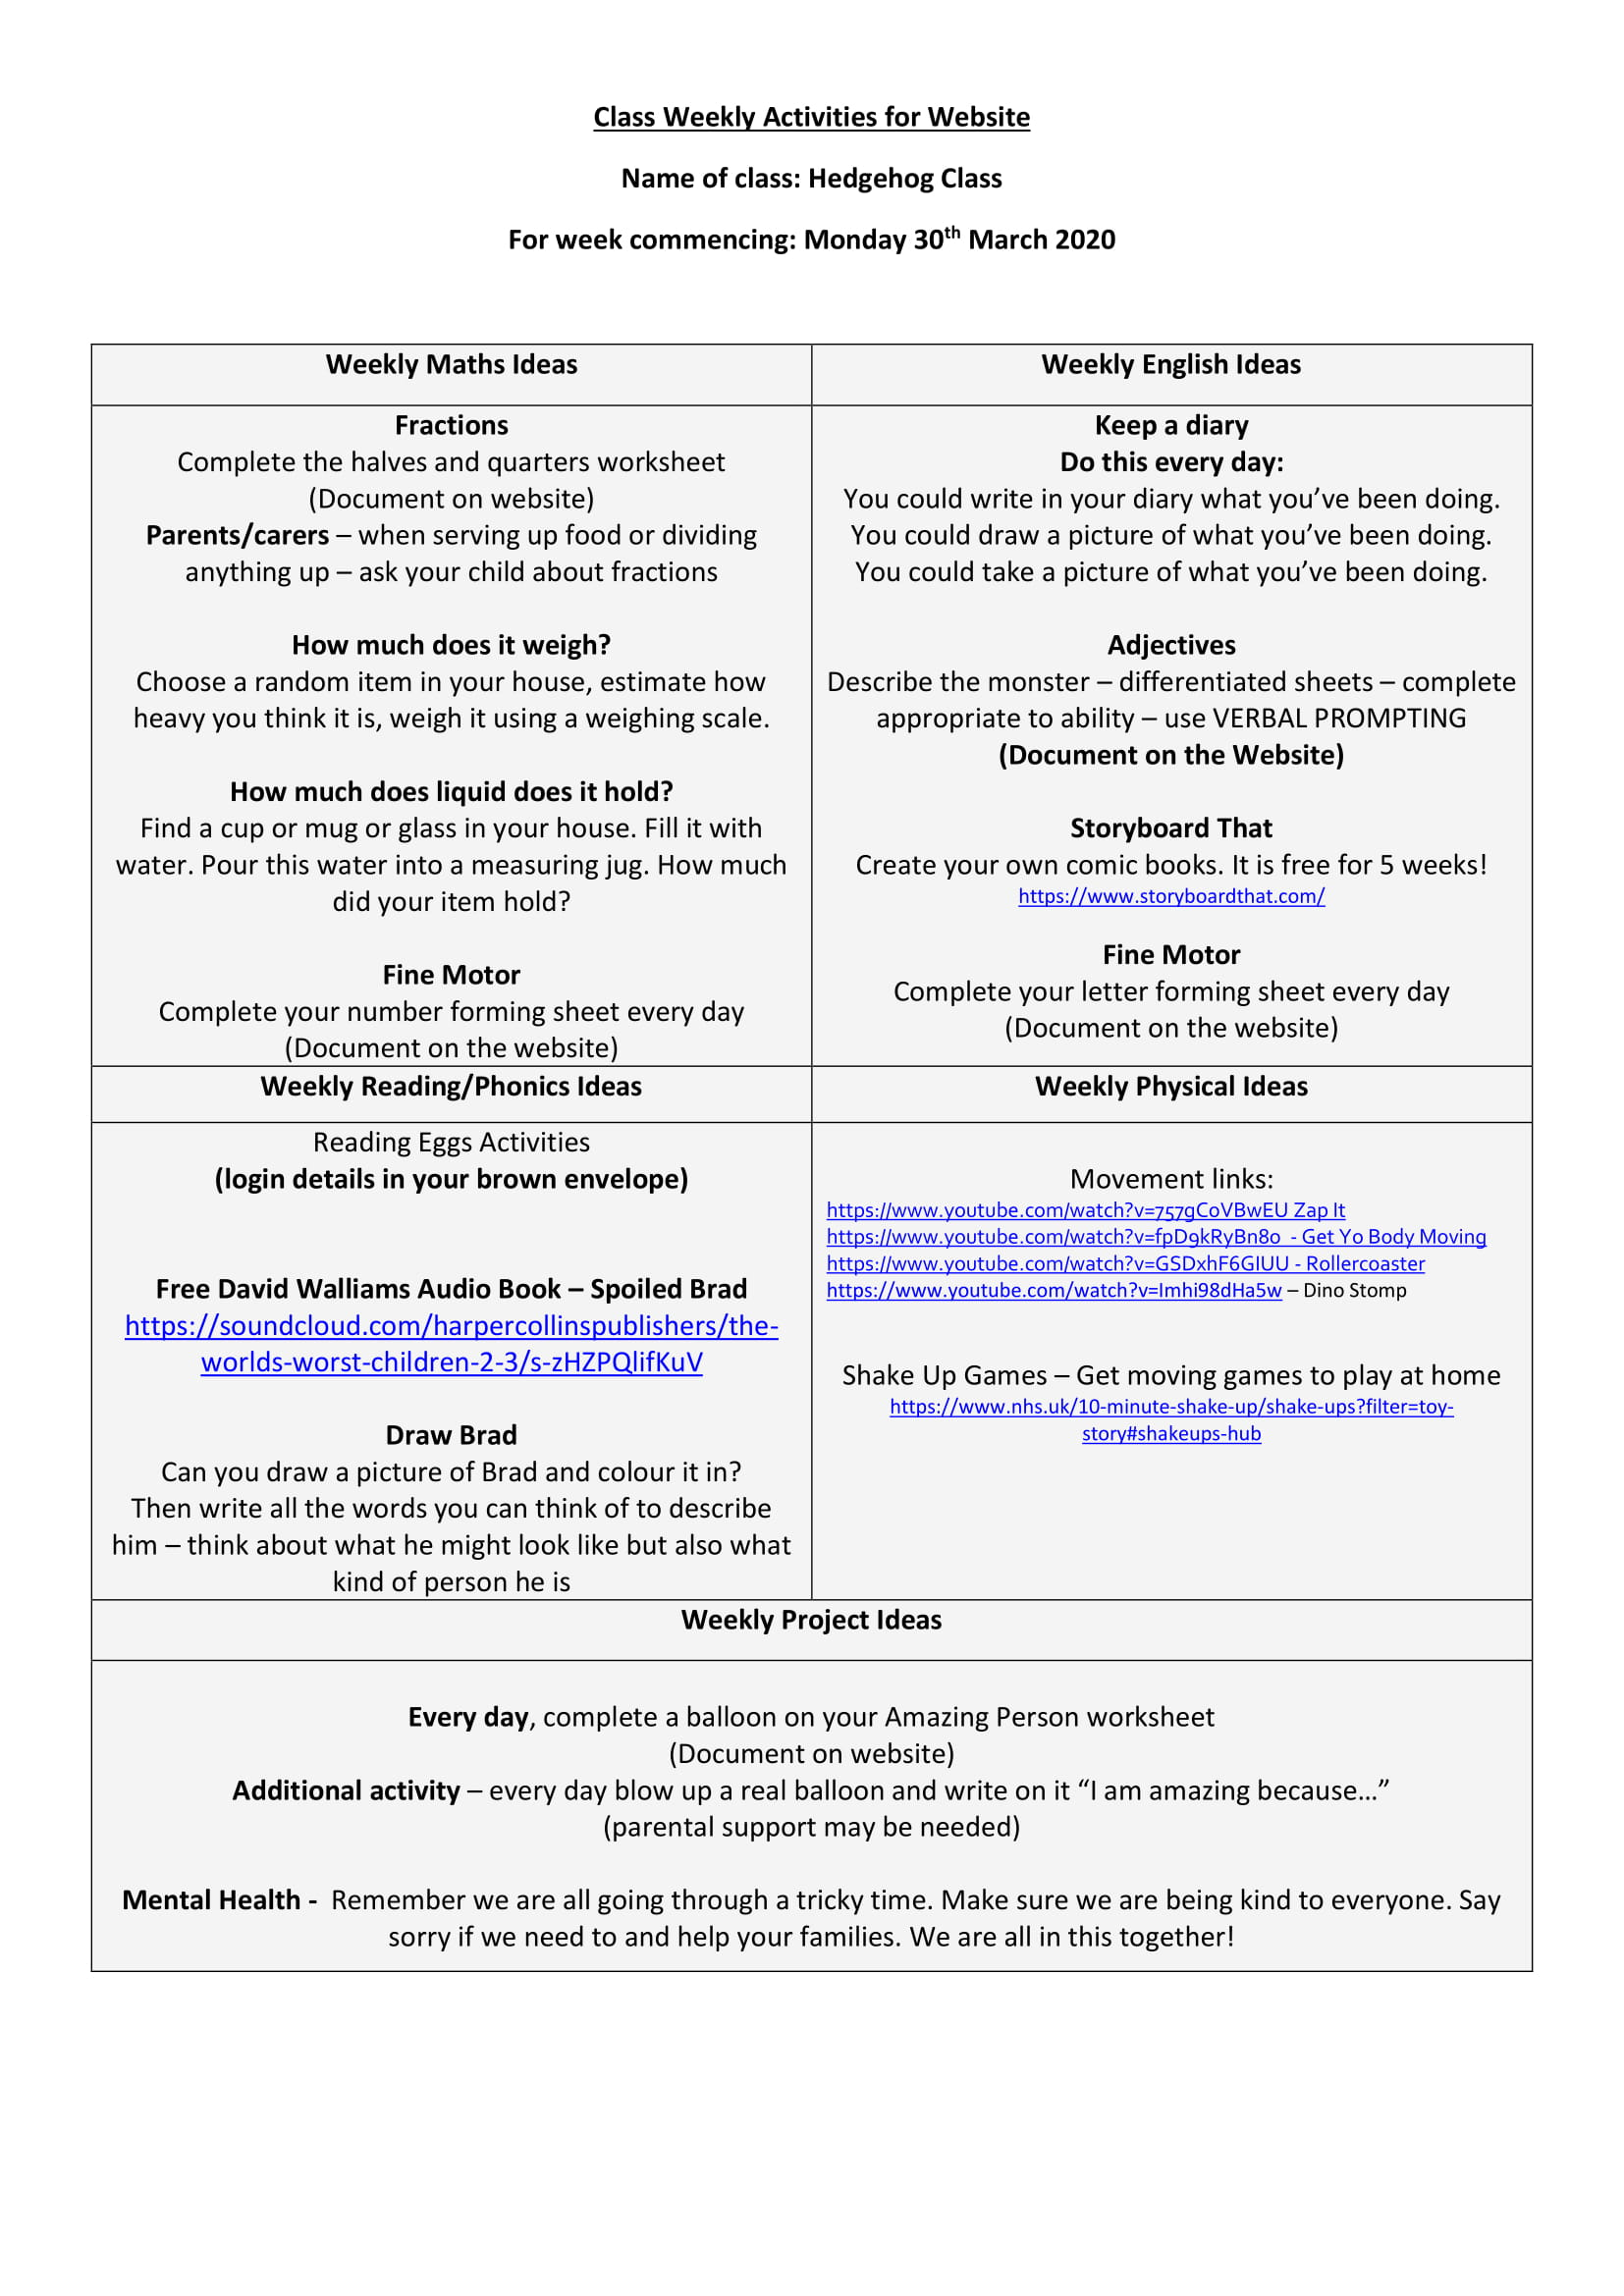 Hedgehog Weekly Activities for 30th March 2020-1